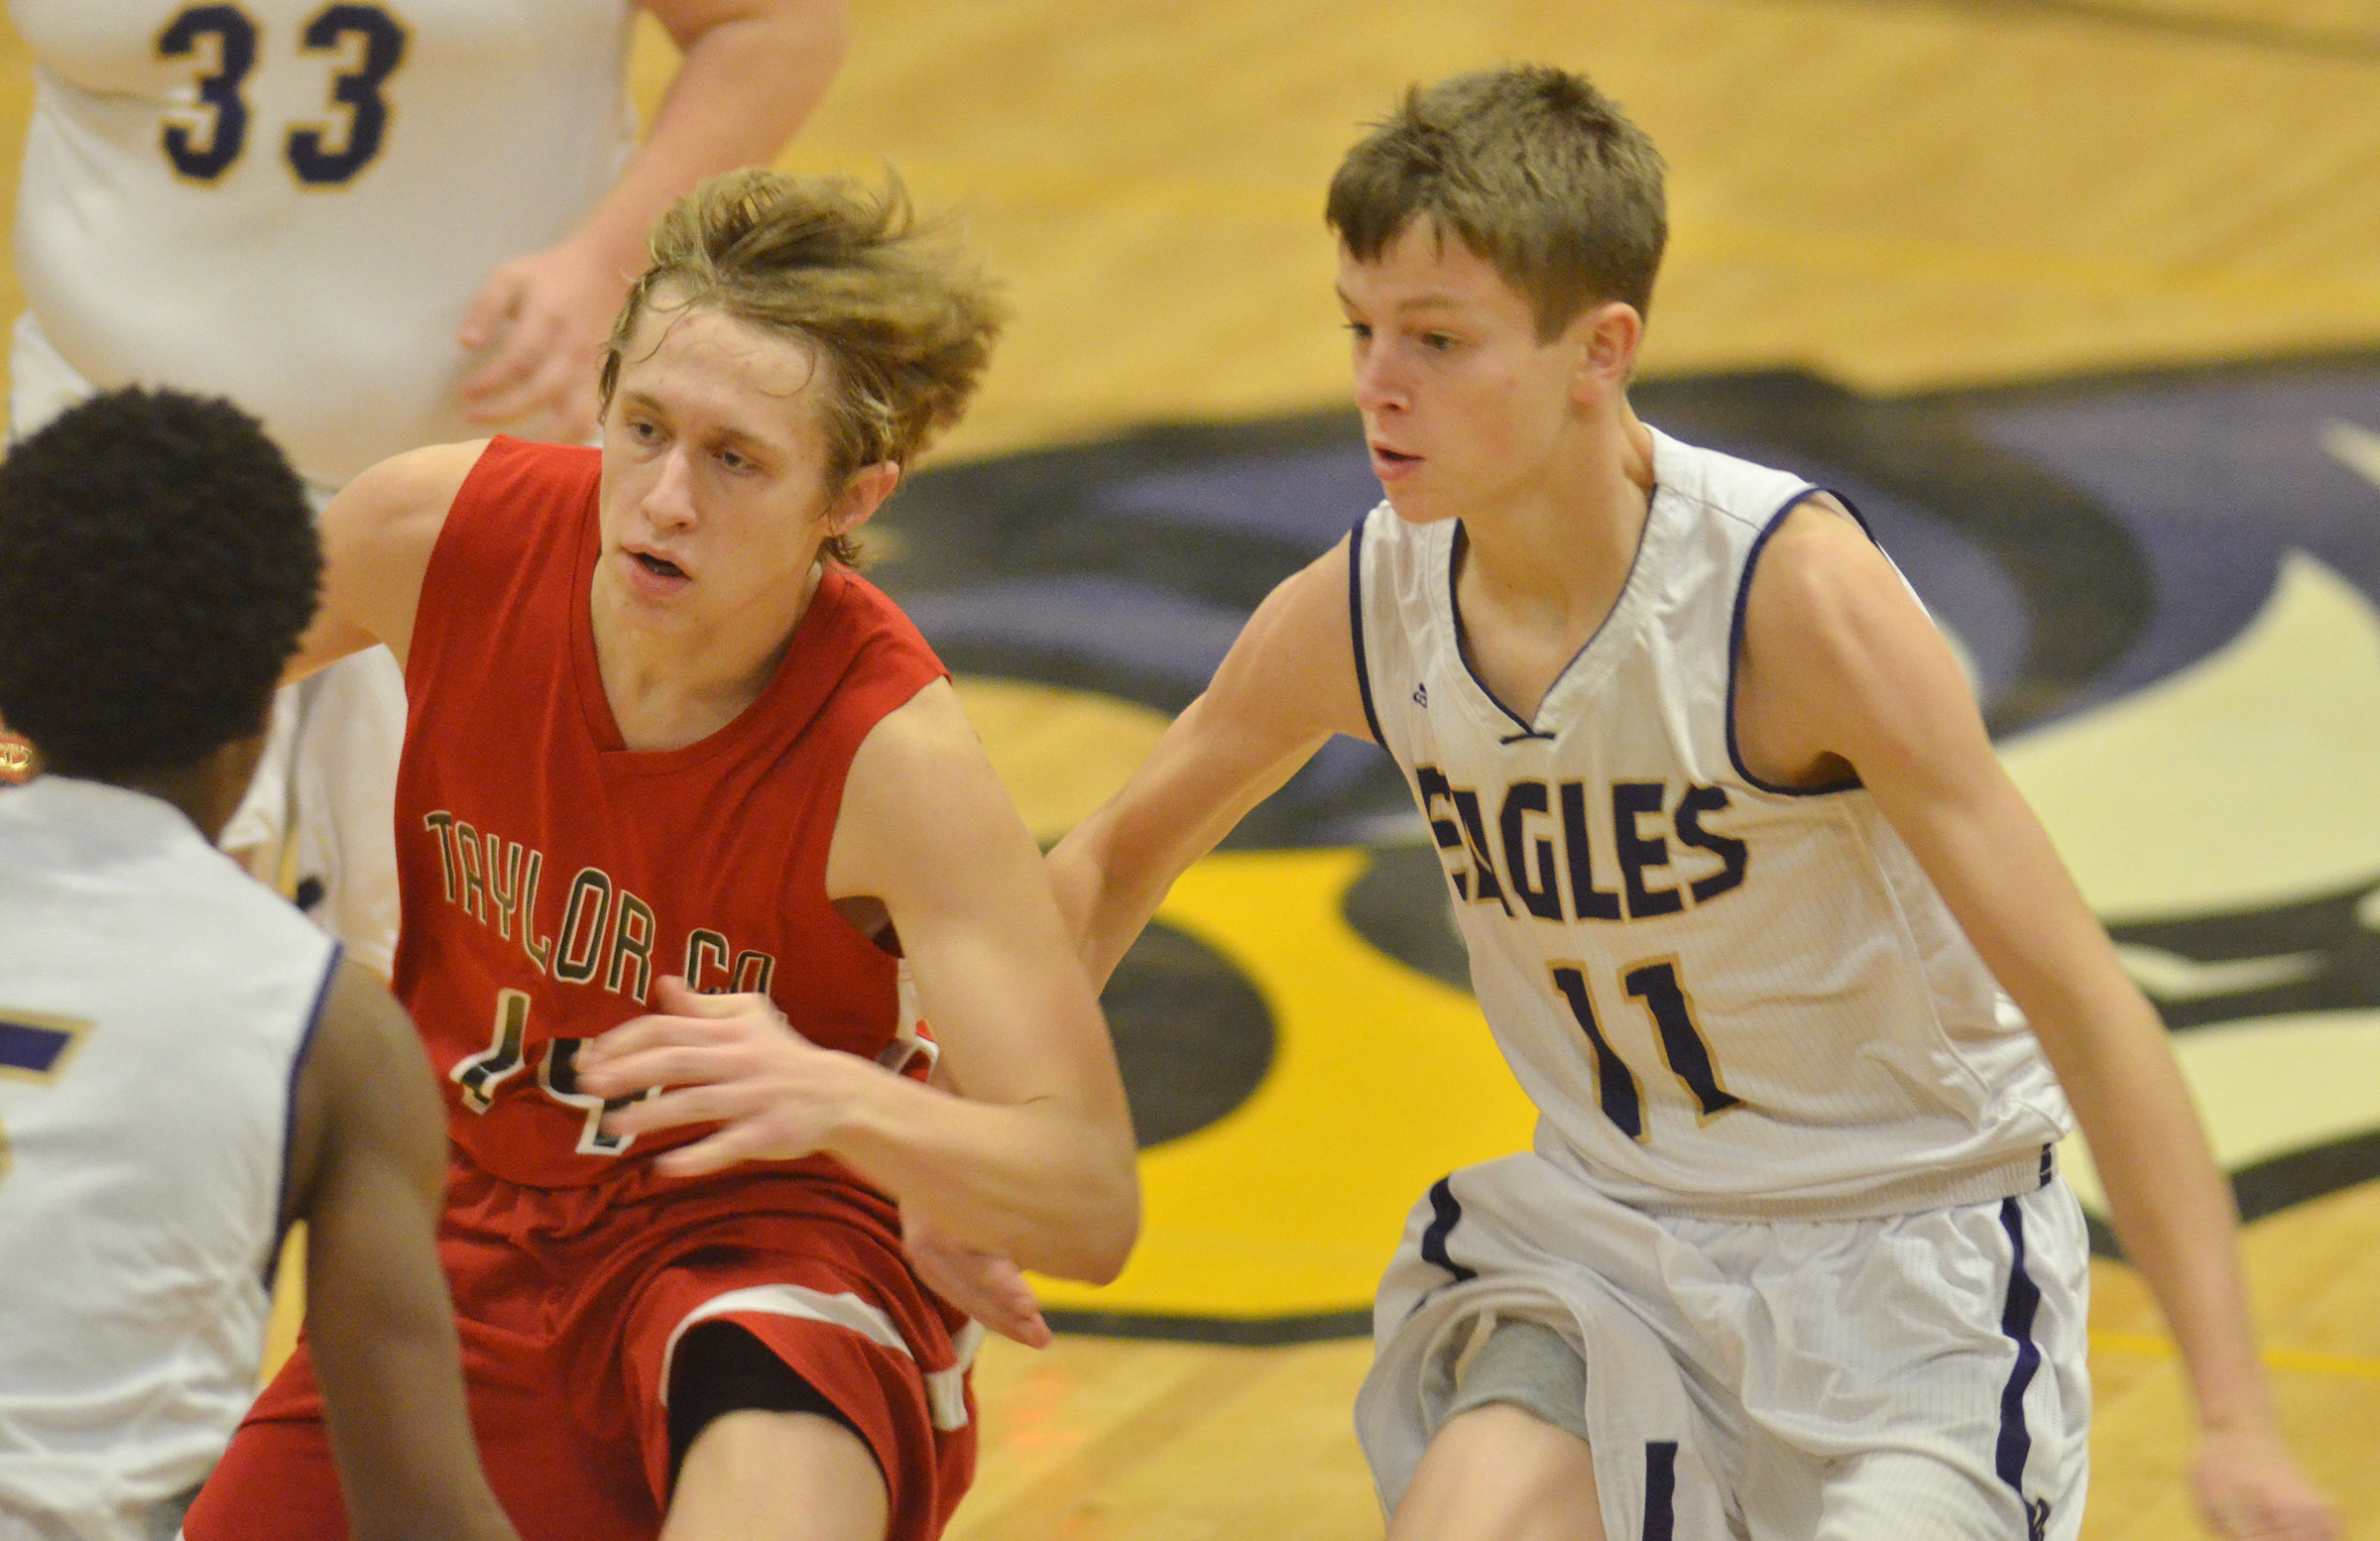 CHS freshman Noah Hughes plays defense.